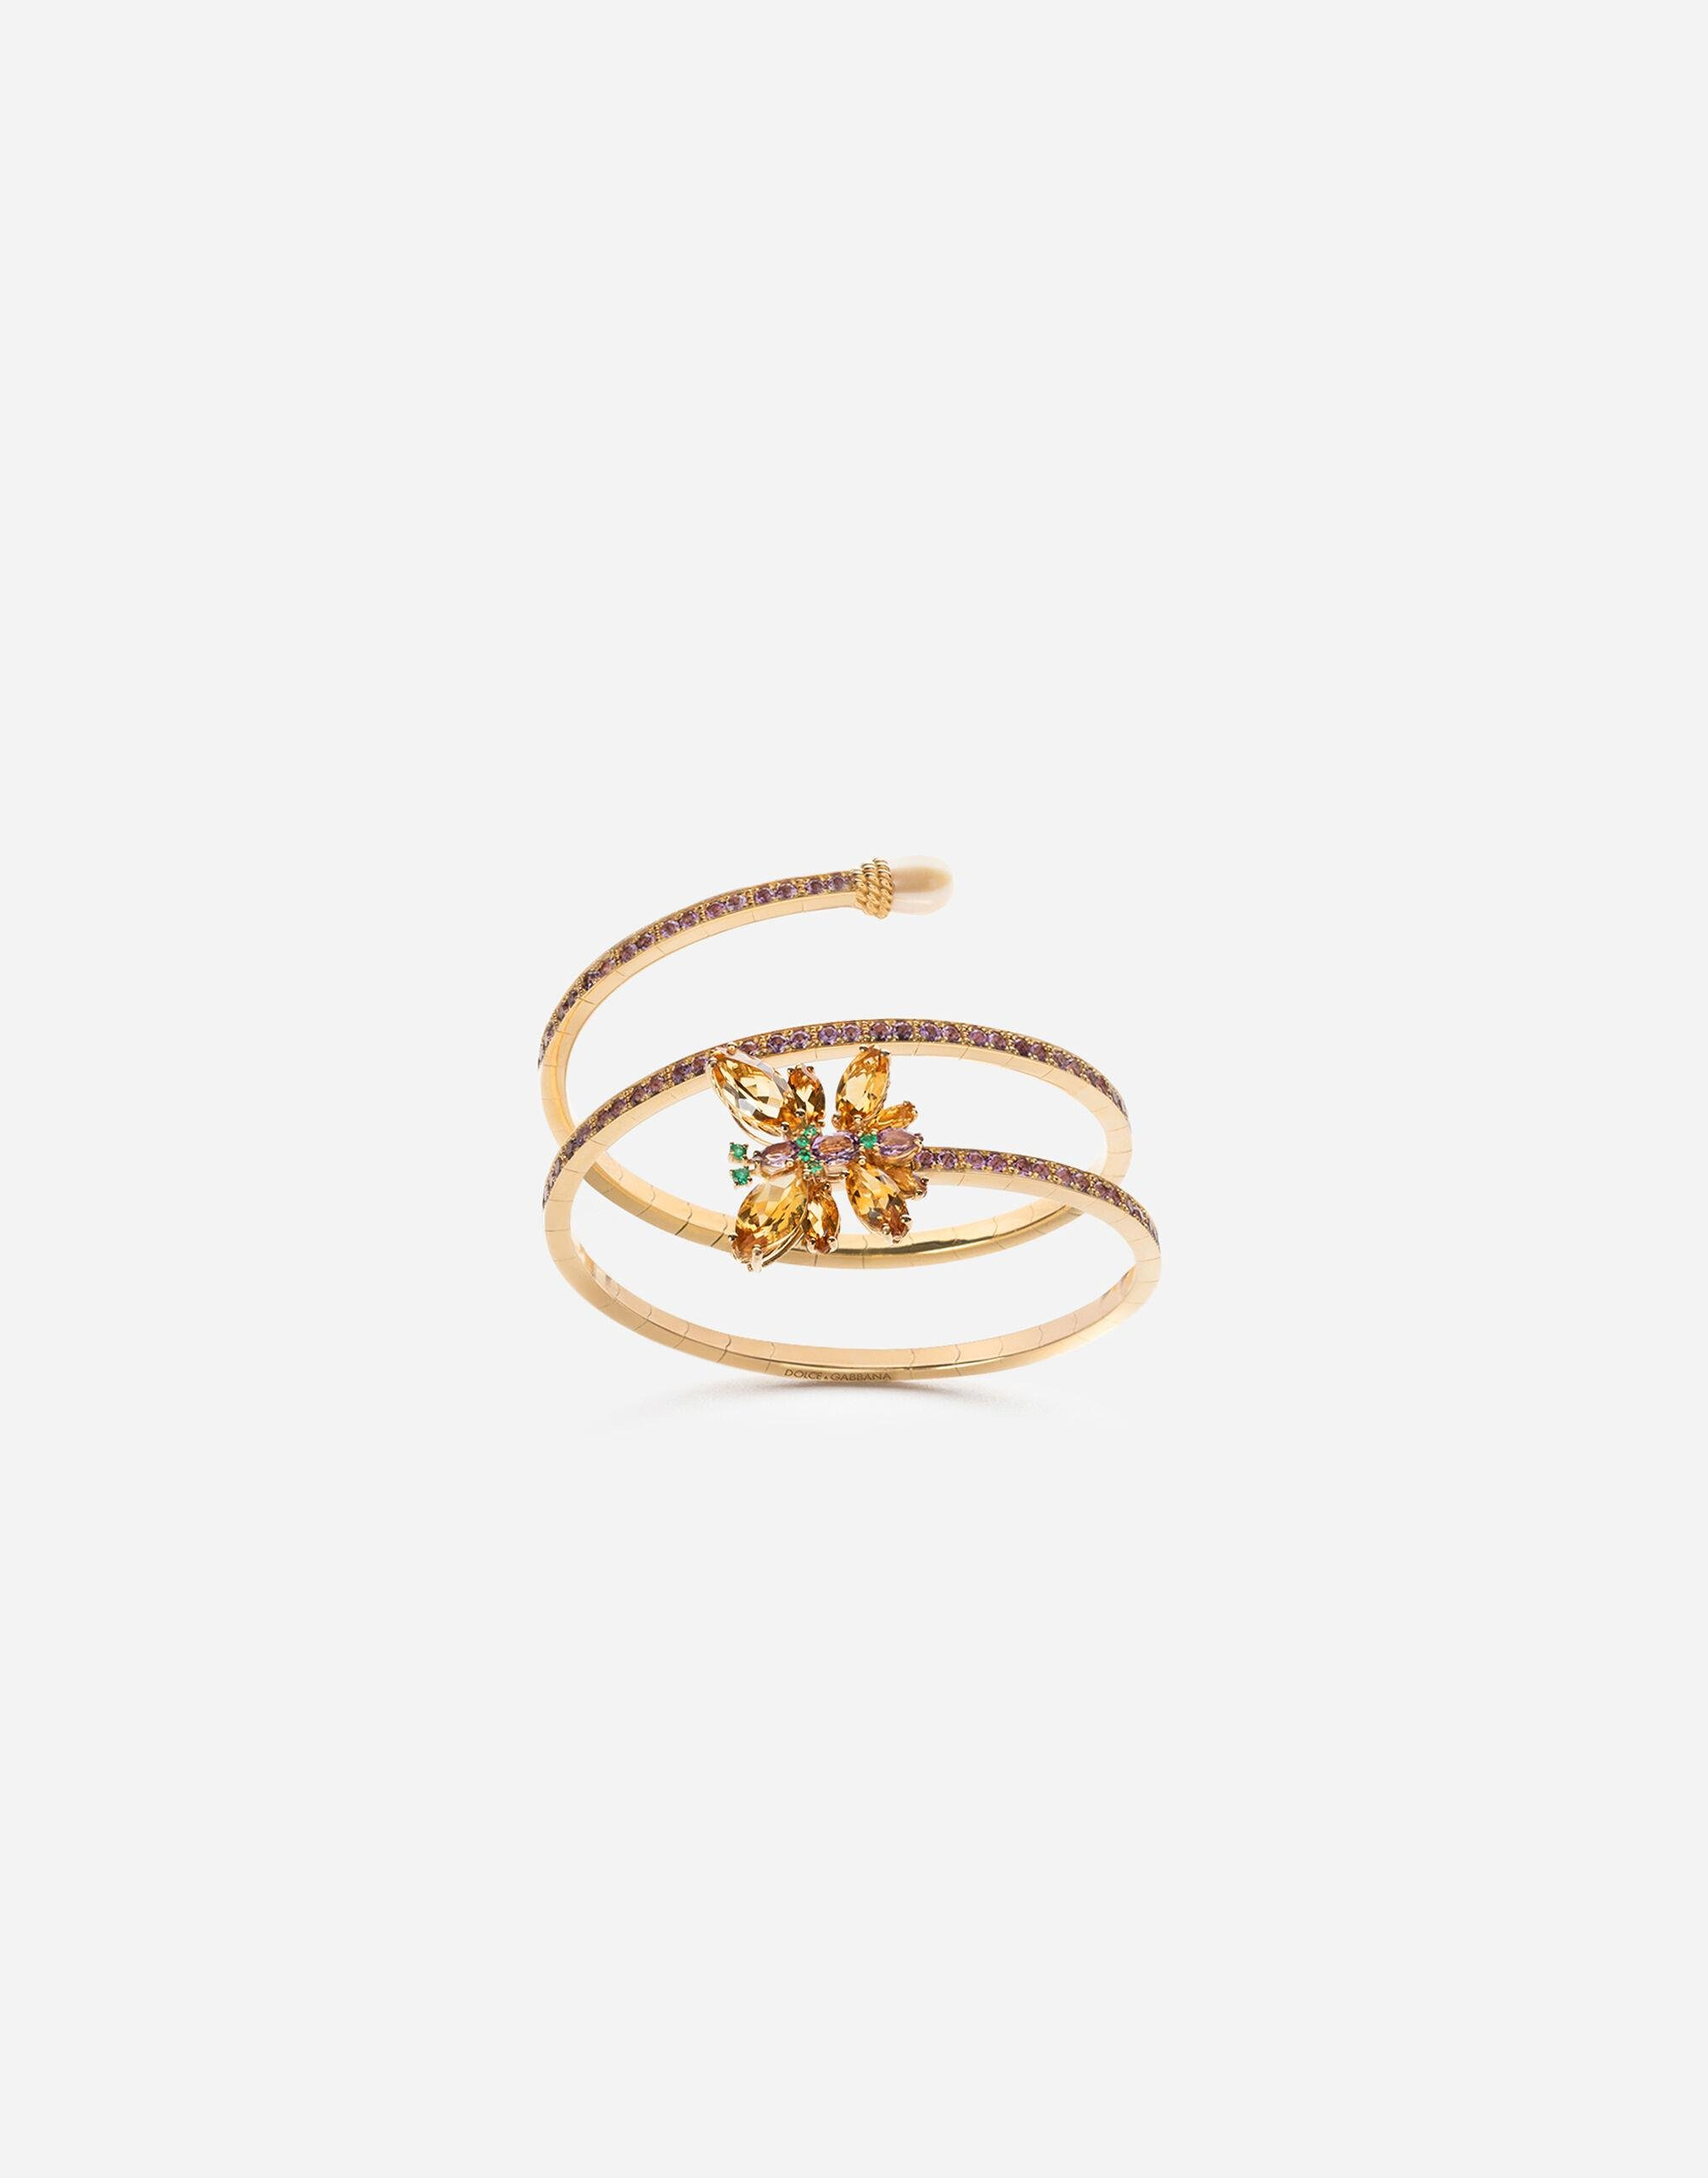 Spring yellow gold bracelet with butterfly-shaped settings